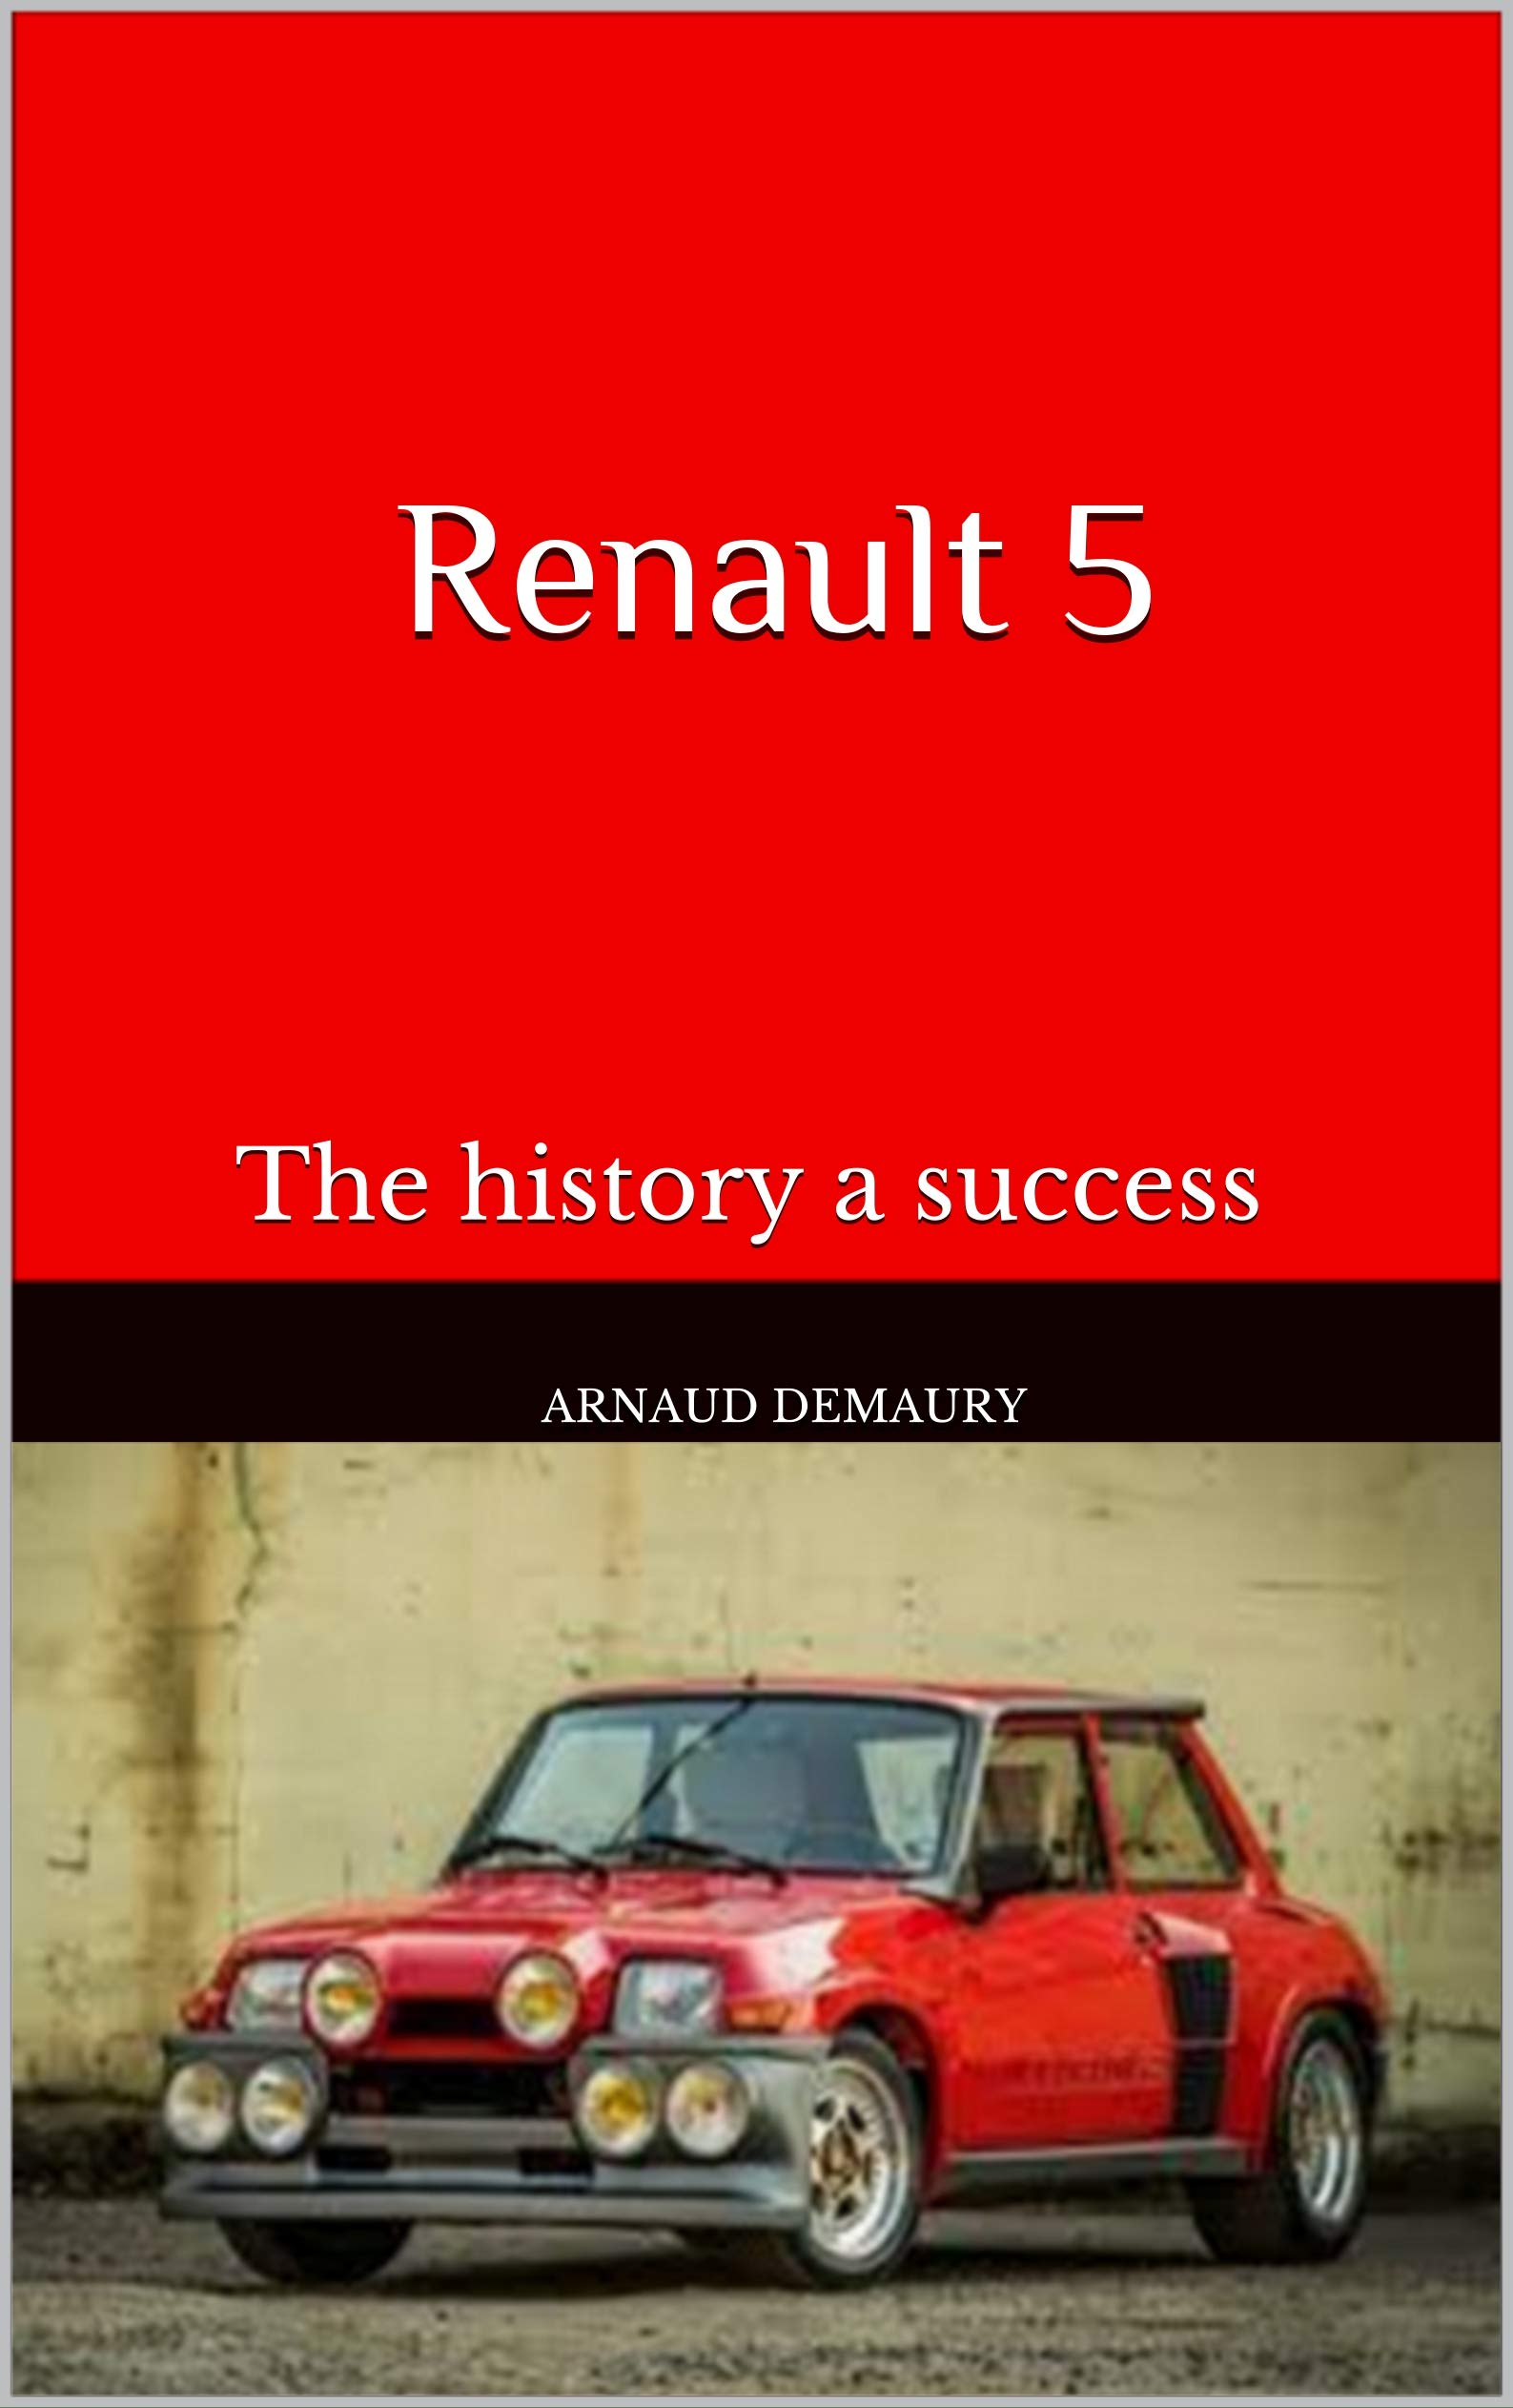 Renault 5: The history a success por Arnaud Demaury